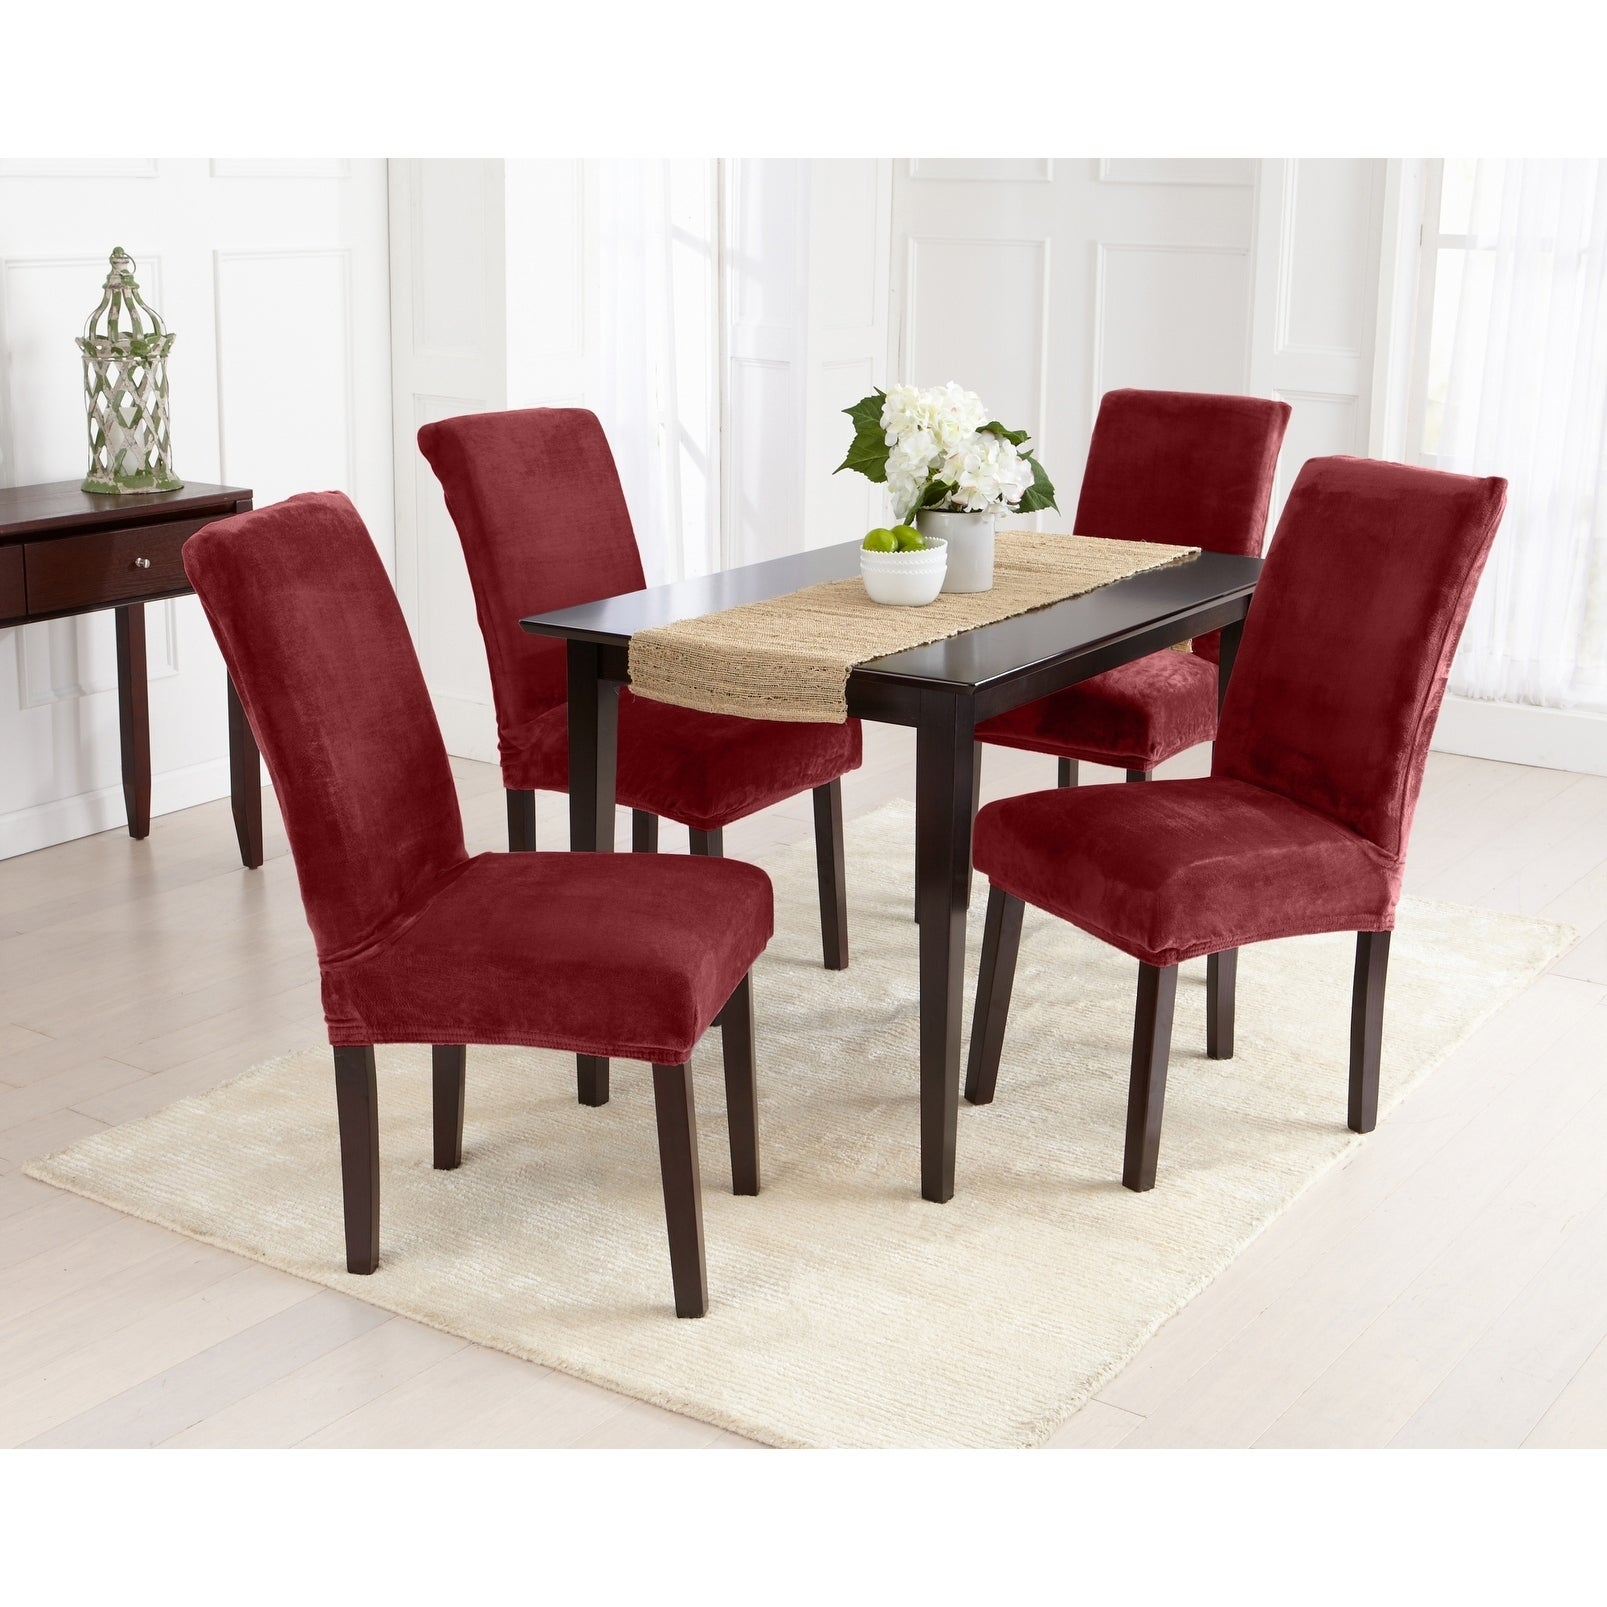 Great Bay Home 2 Pack Velvet Plush Solid Dining Room Chair Cover